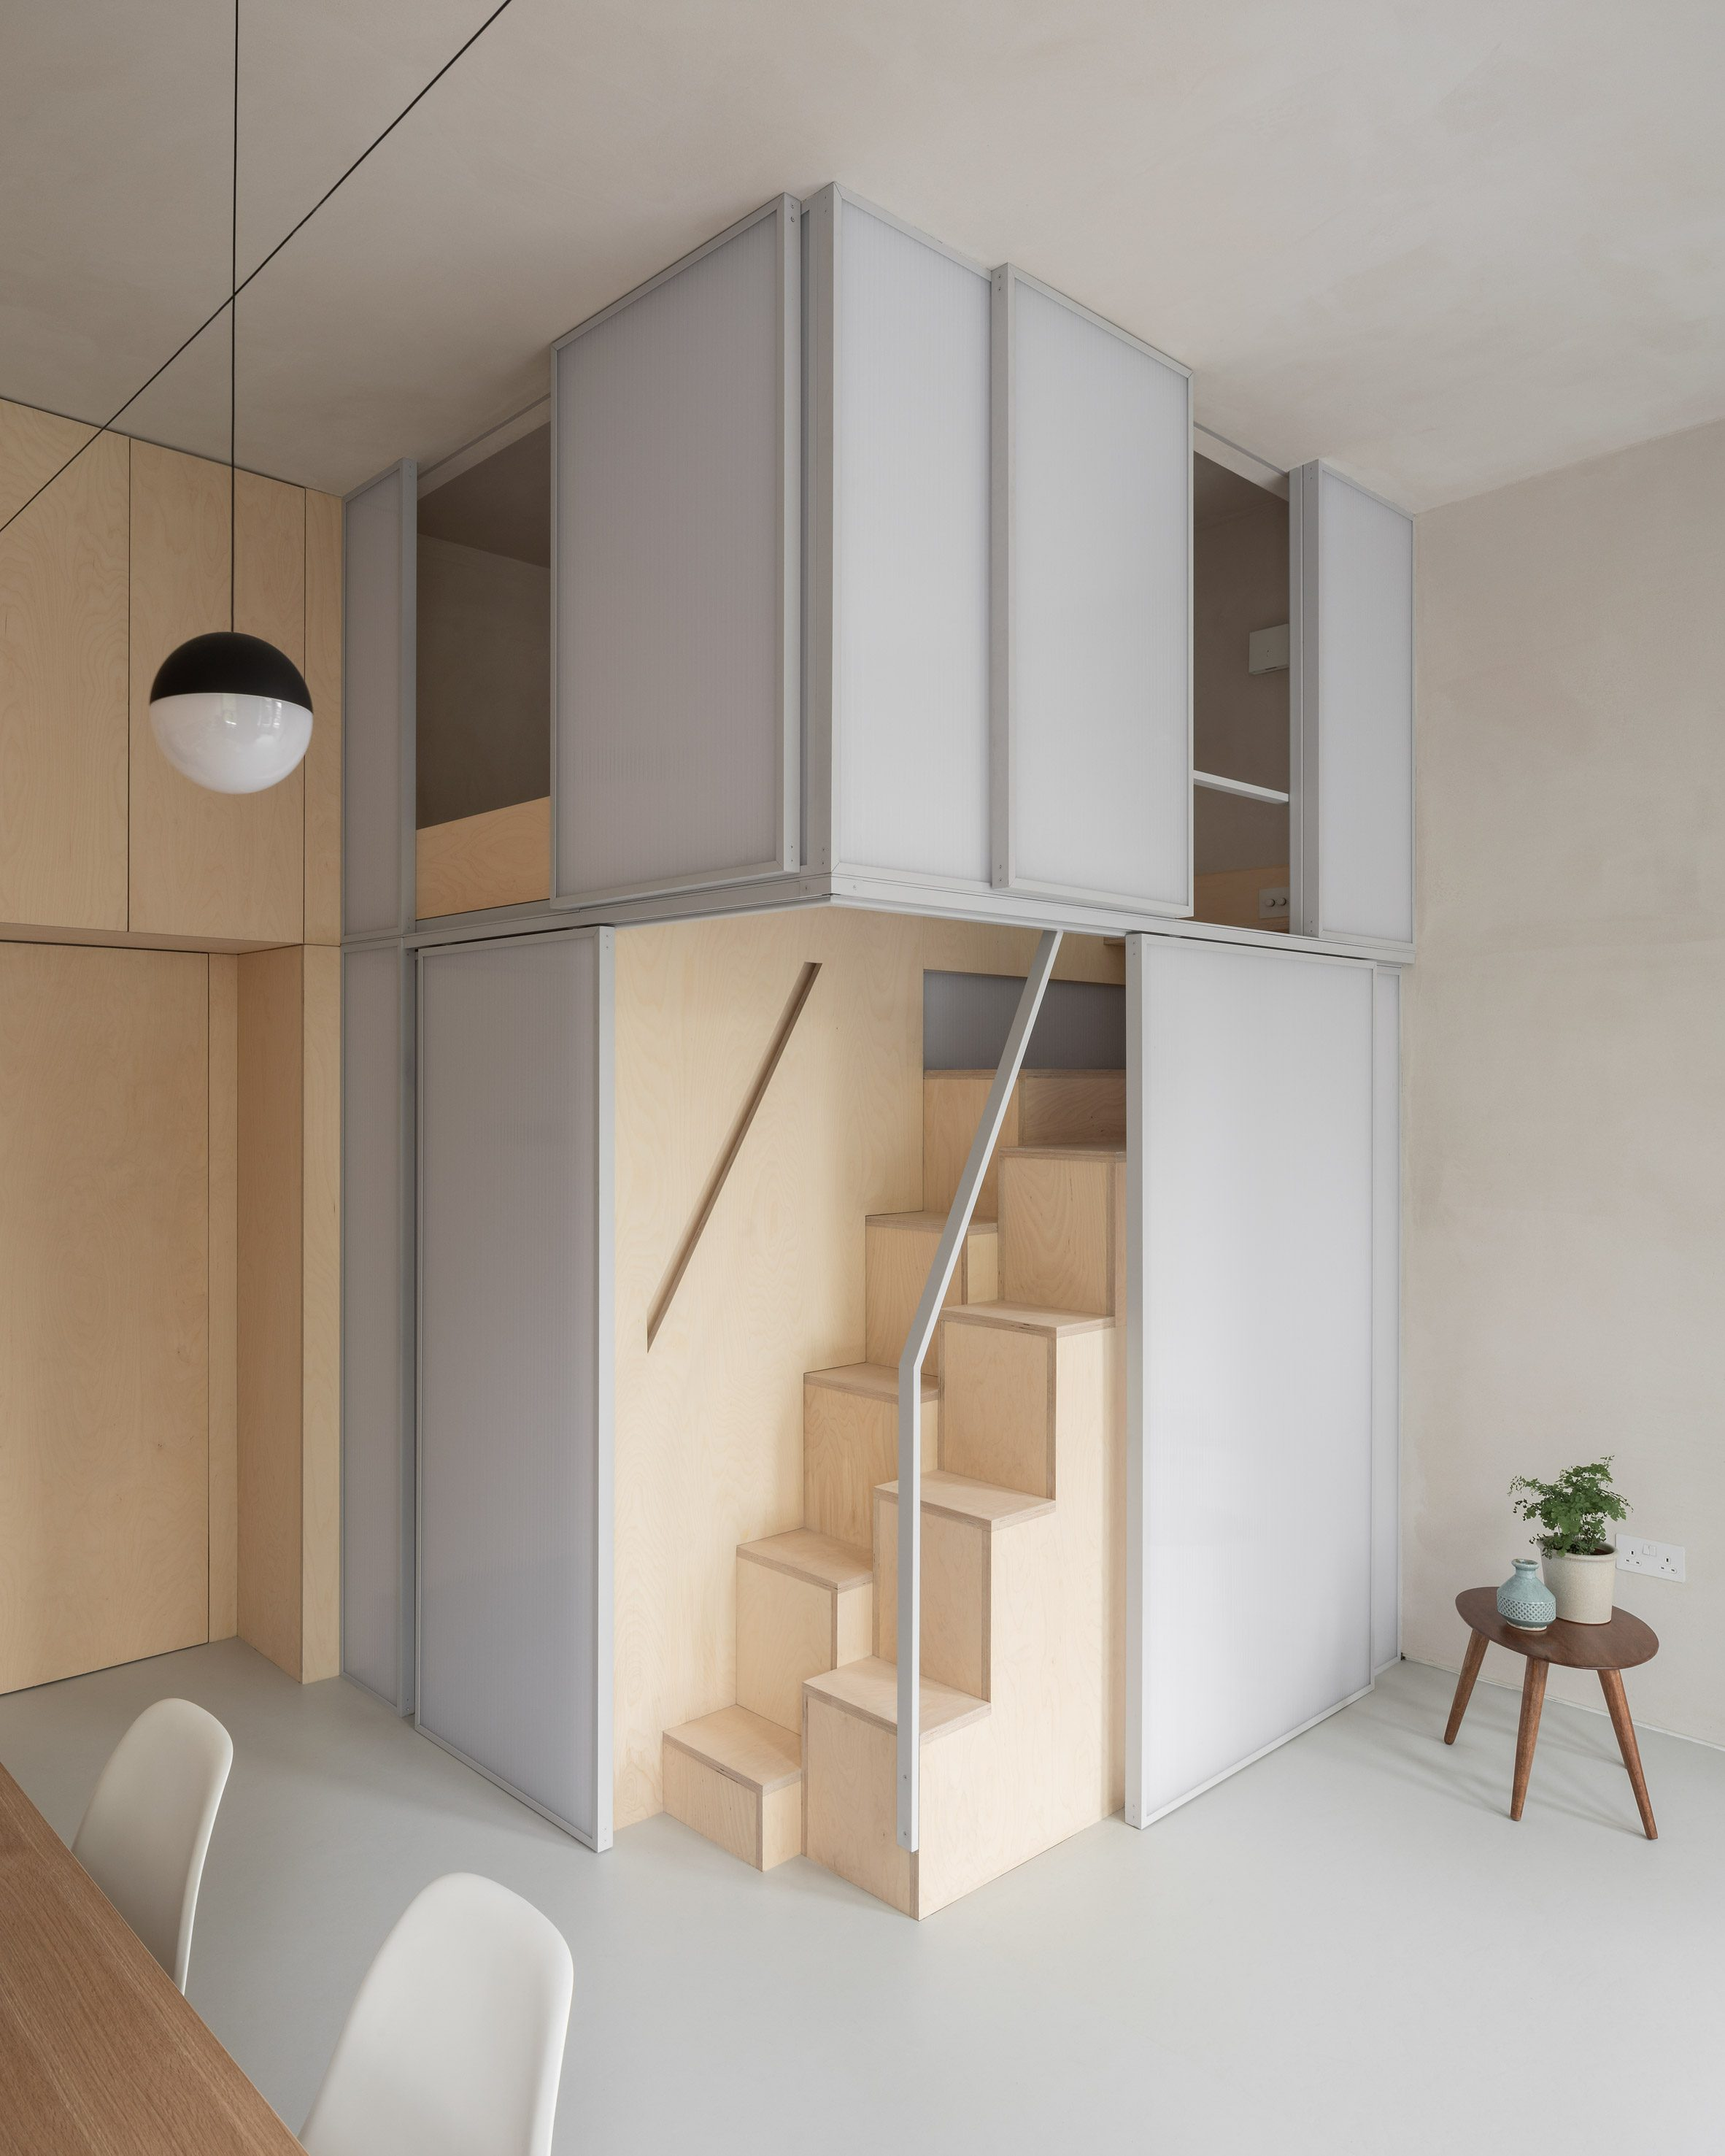 """Proctor and Shaw designs London micro-apartment with """"sleeping cocoon"""""""